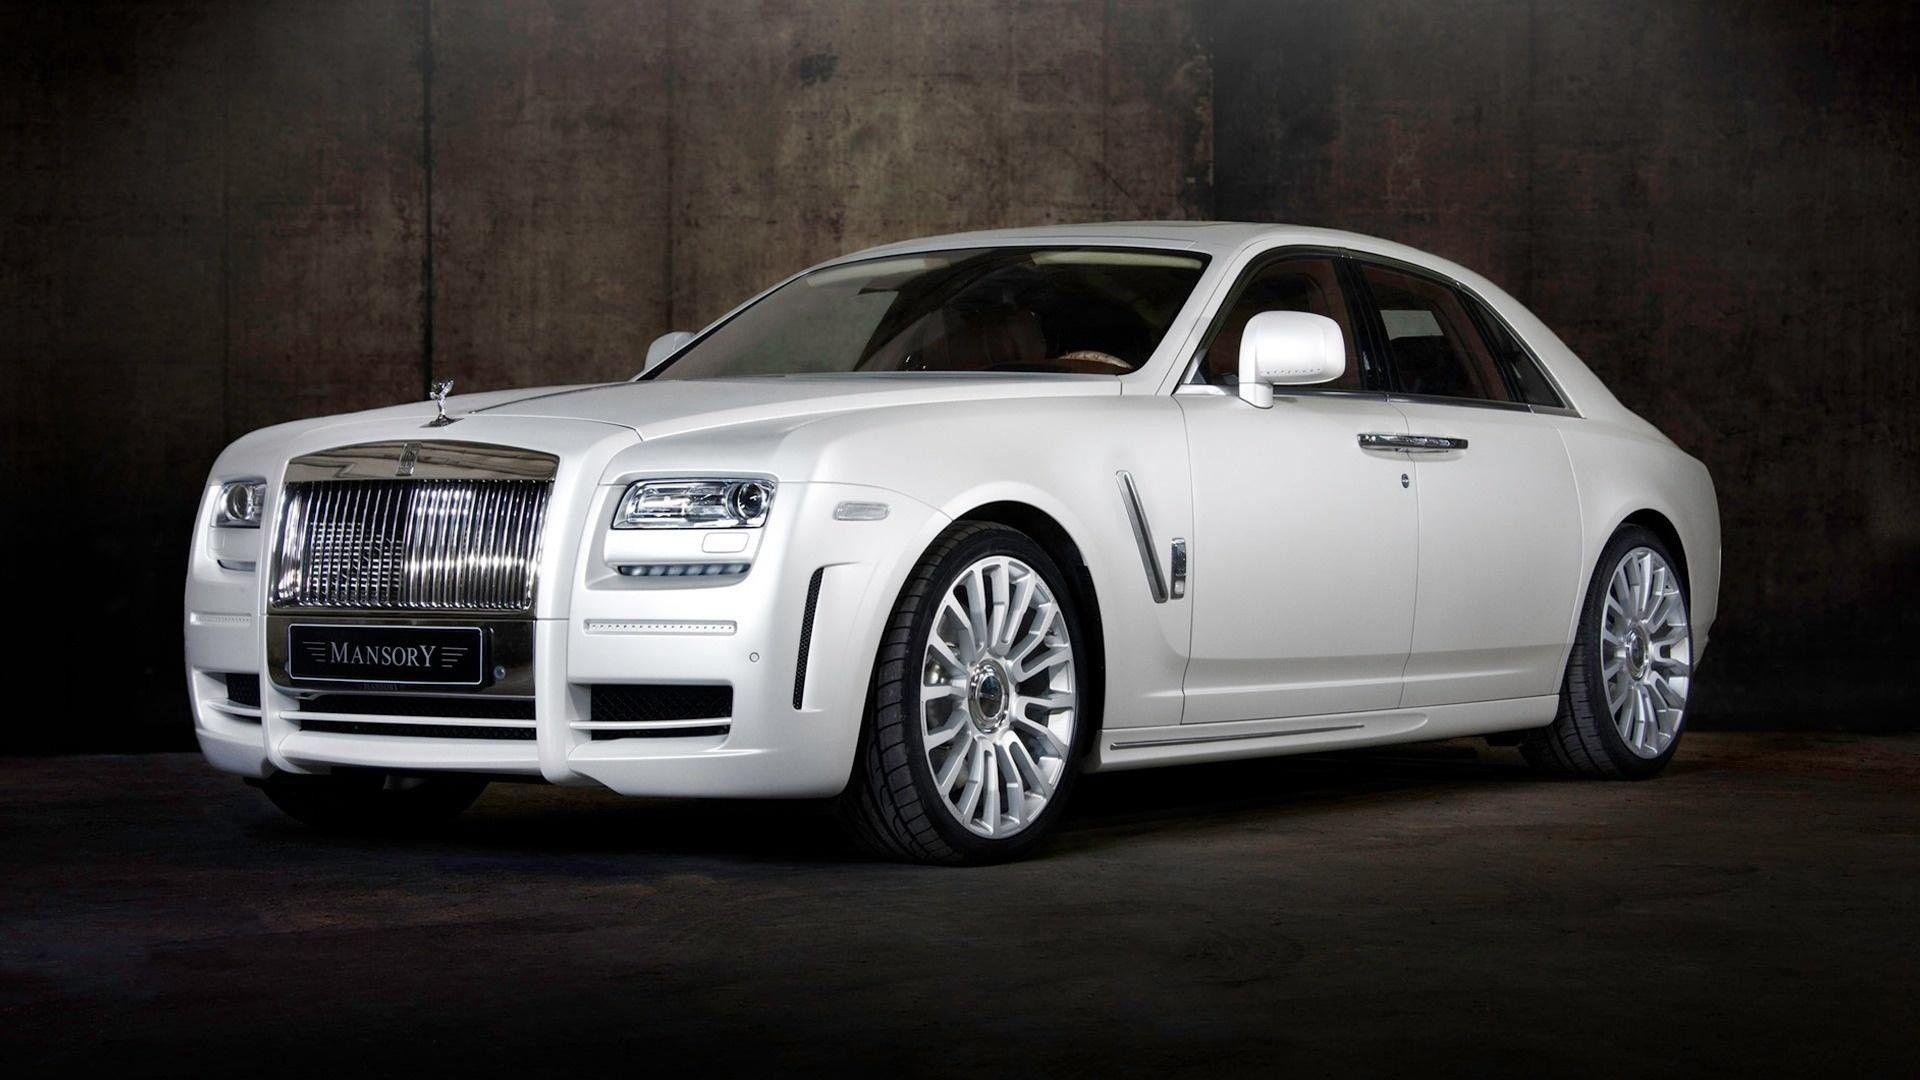 Rolls royce wallpapers wallpaper cave rolls royce cars wallpapers free download hd latest motors images voltagebd Gallery